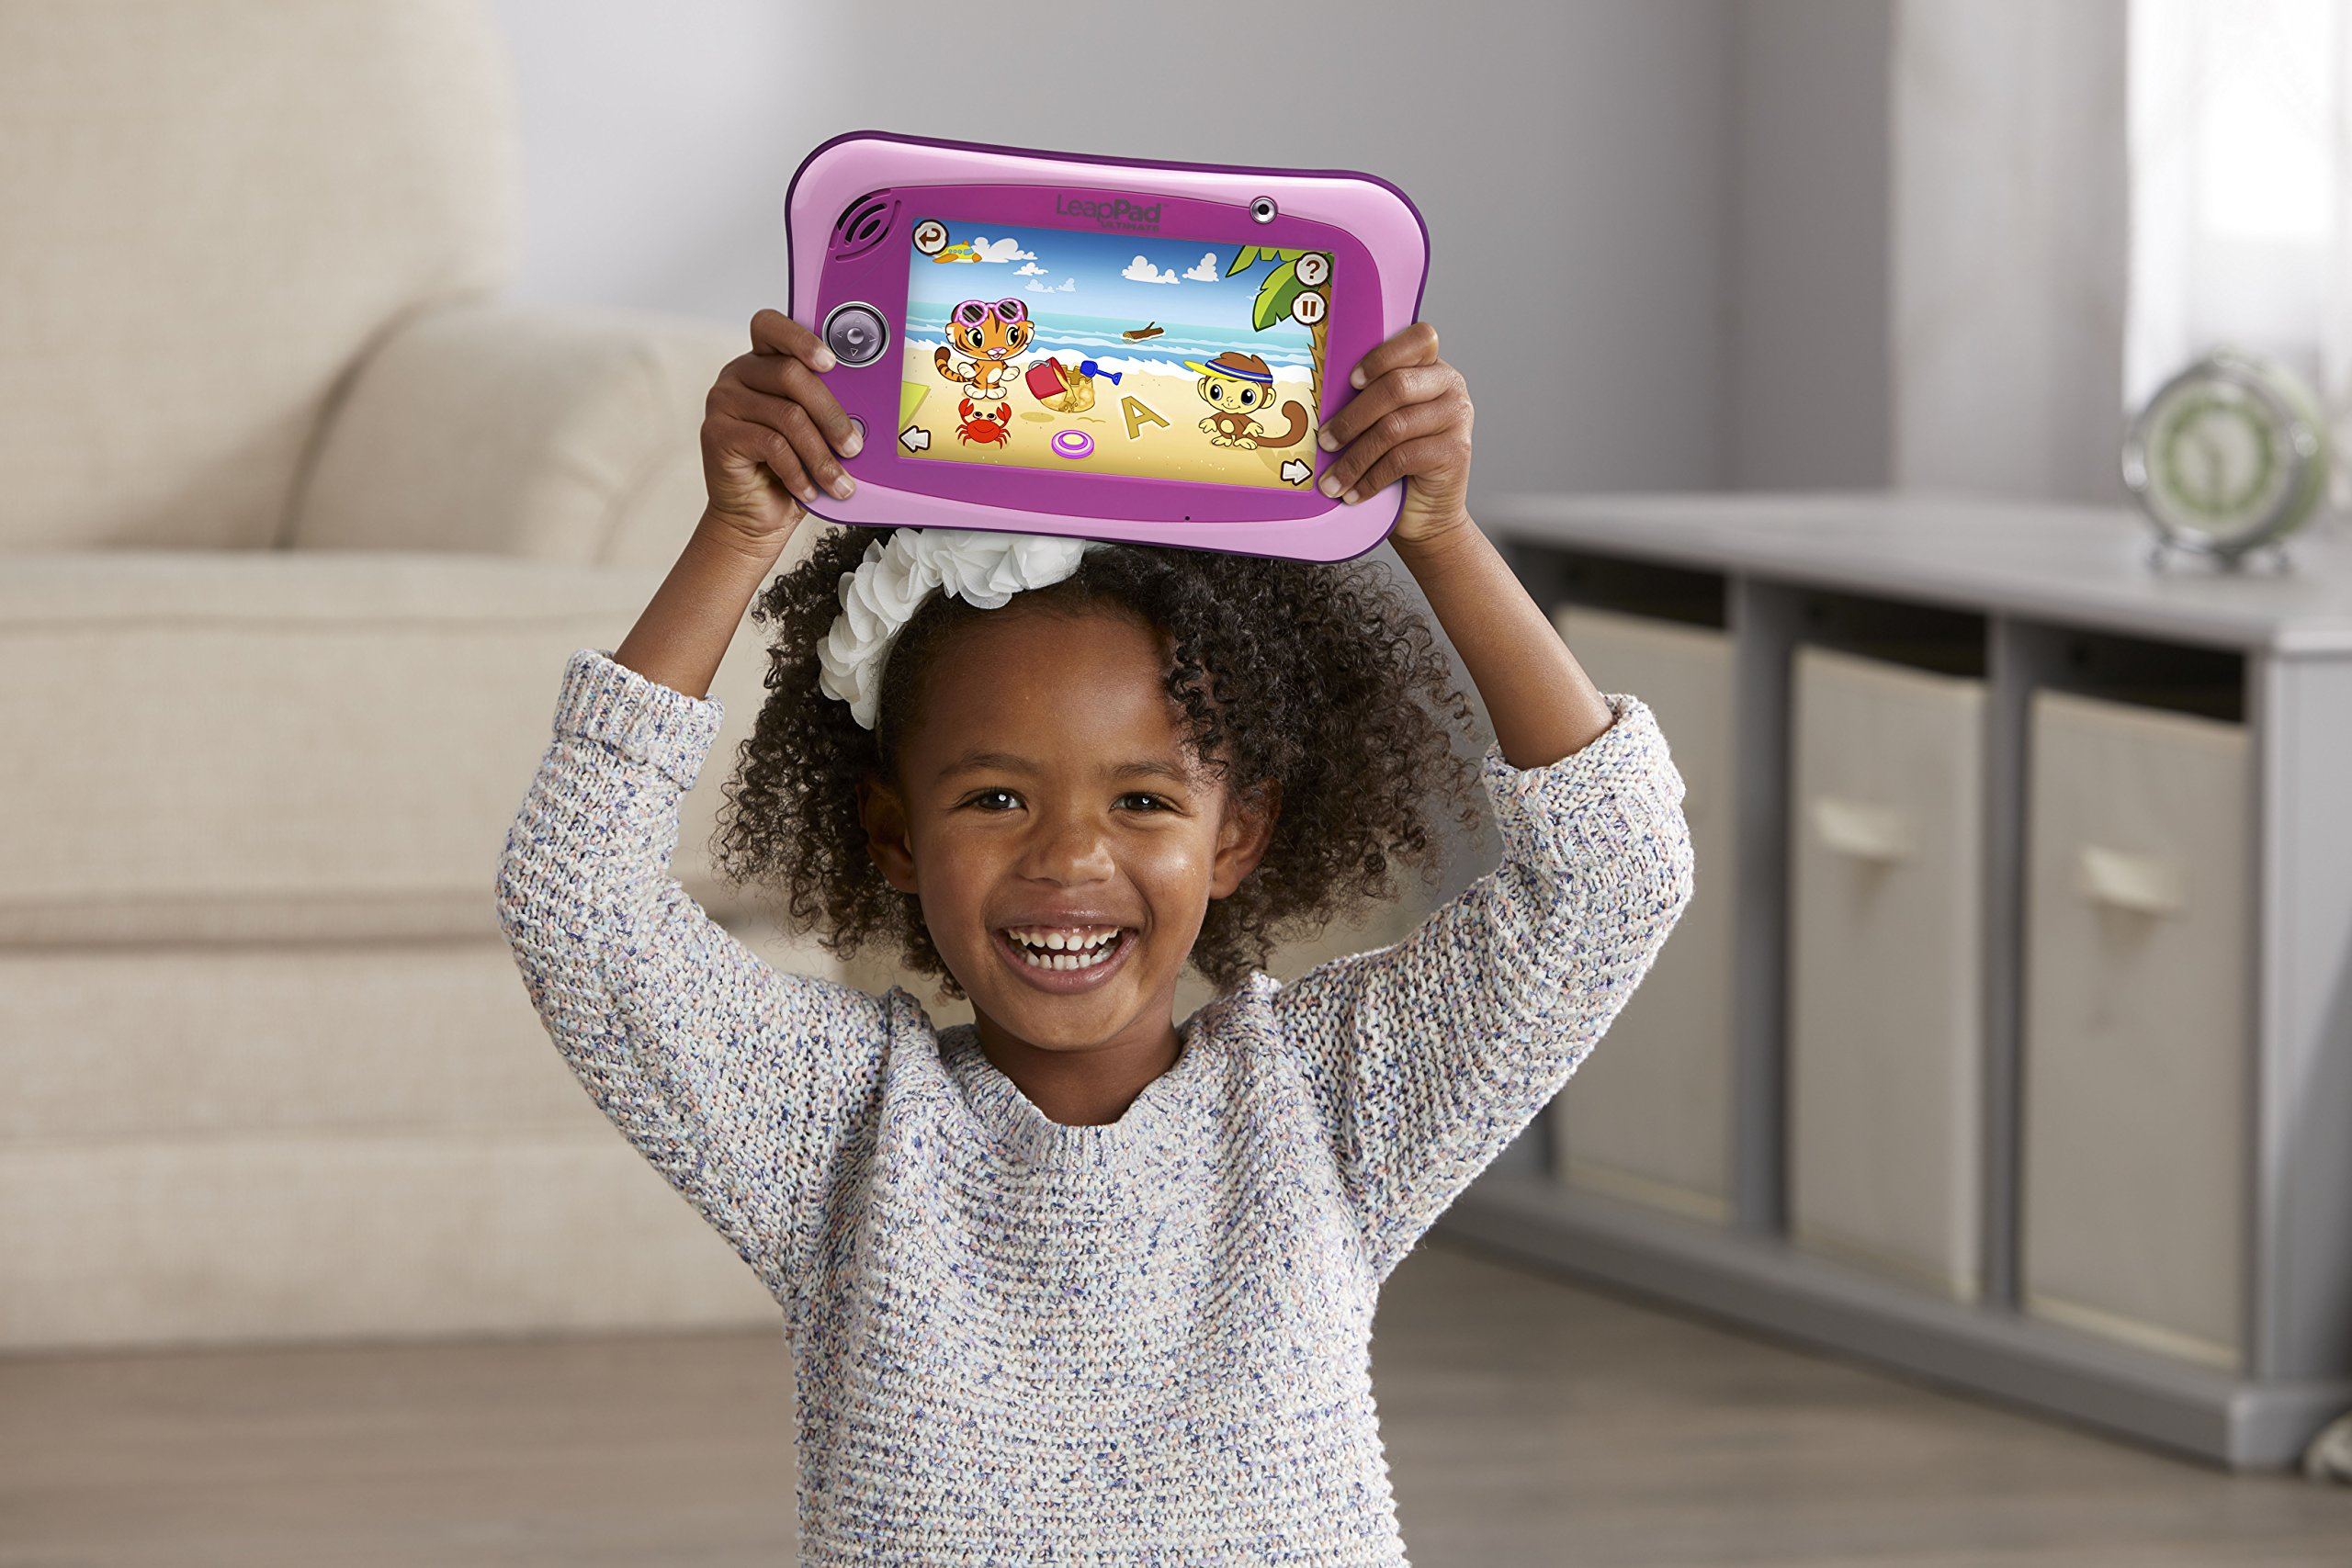 LeapFrog LeapPad Ultimate Ready for School Tablet, Pink by LeapFrog (Image #7)